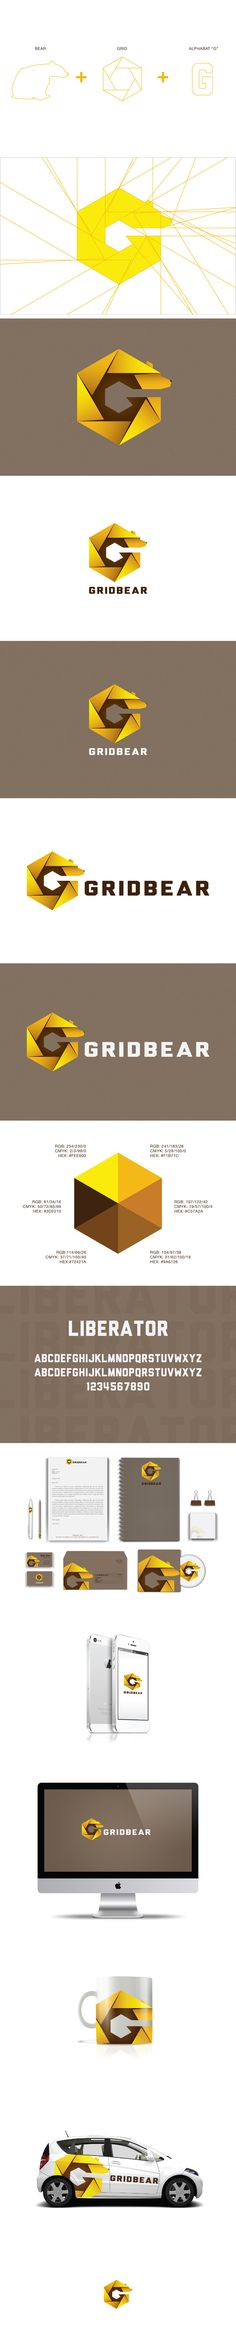 GridBear Visual Identity by www.BlickeDeeler.de | Visit our website: www.blickedeeler.de/leistungen/corporate-design                                                                                                                                                      More